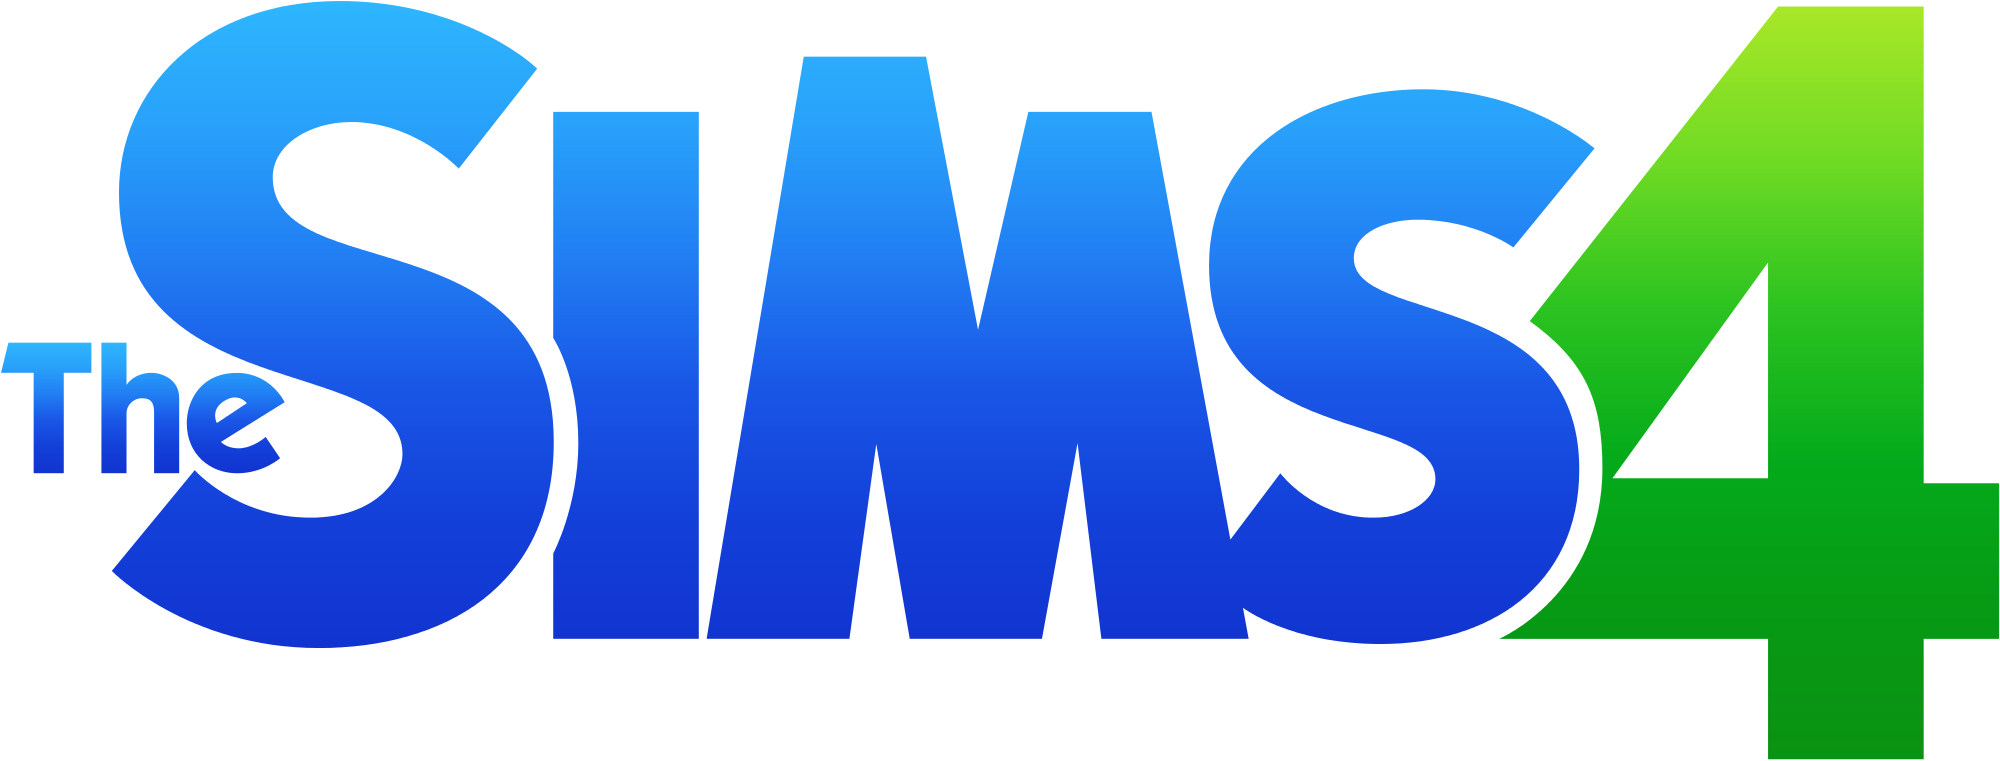 Sims 4 .png. File logo of the